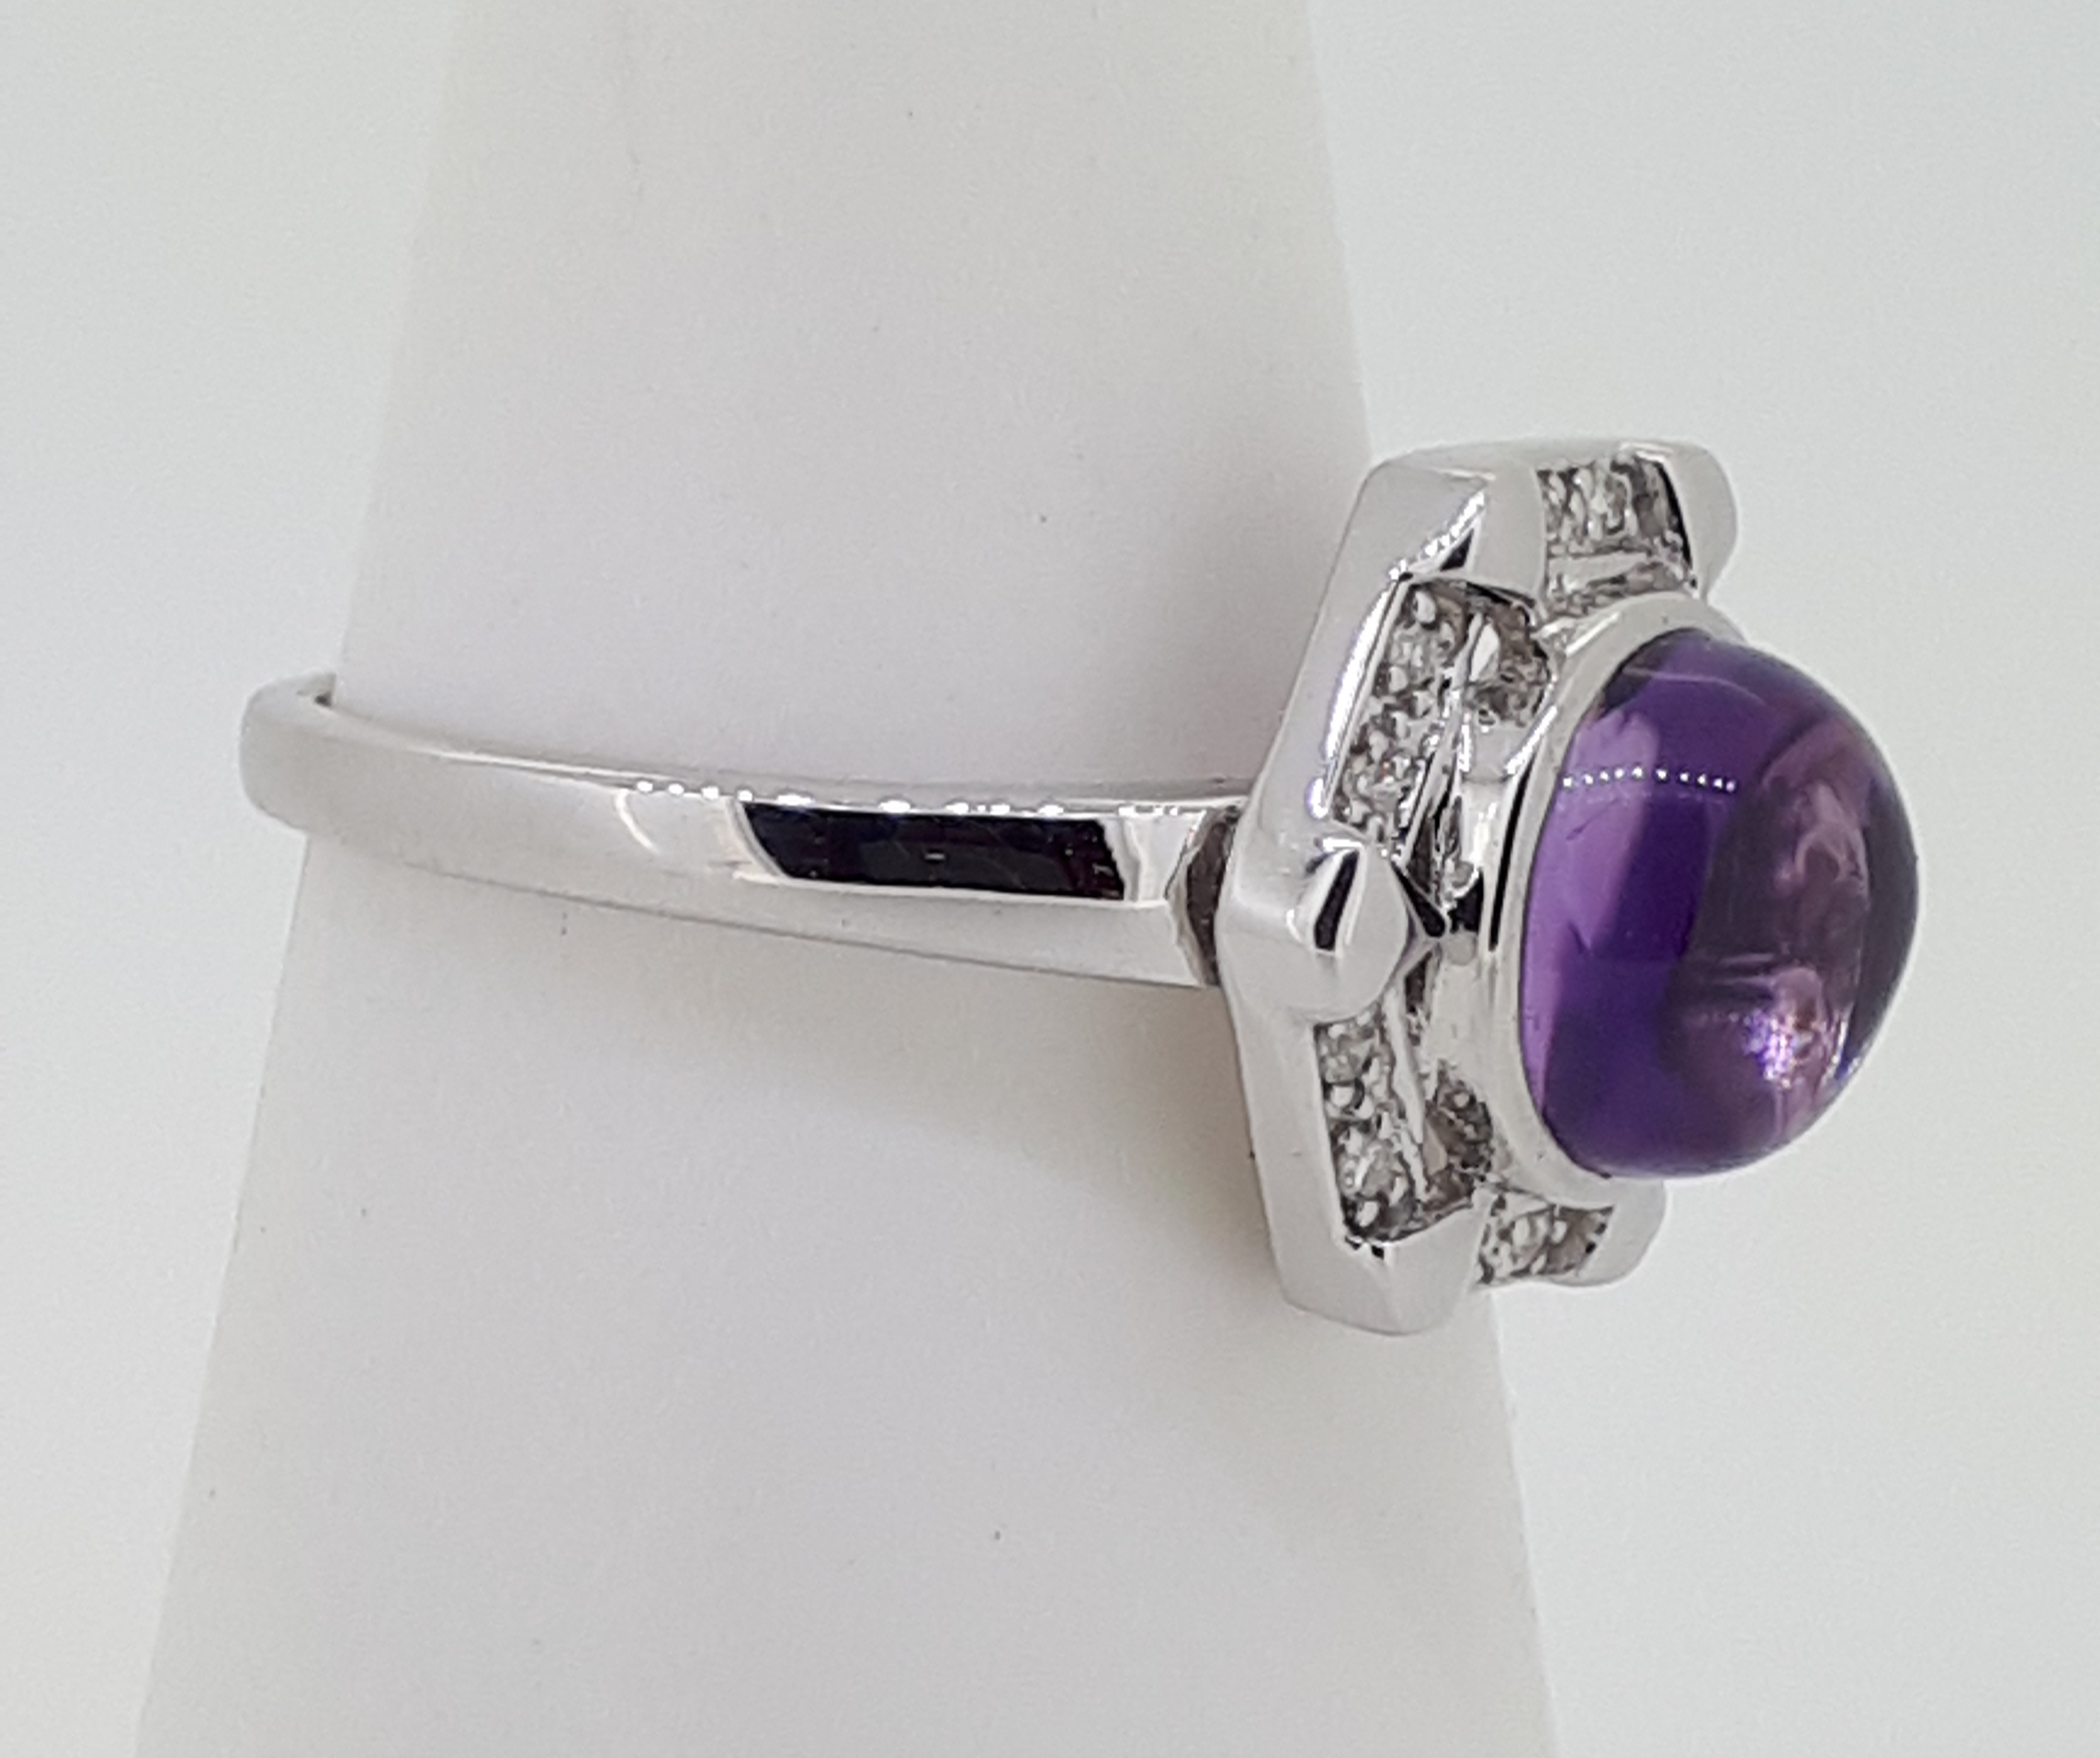 9ct White Gold Cabochon Amethyst & Diamond Ring - Image 2 of 4